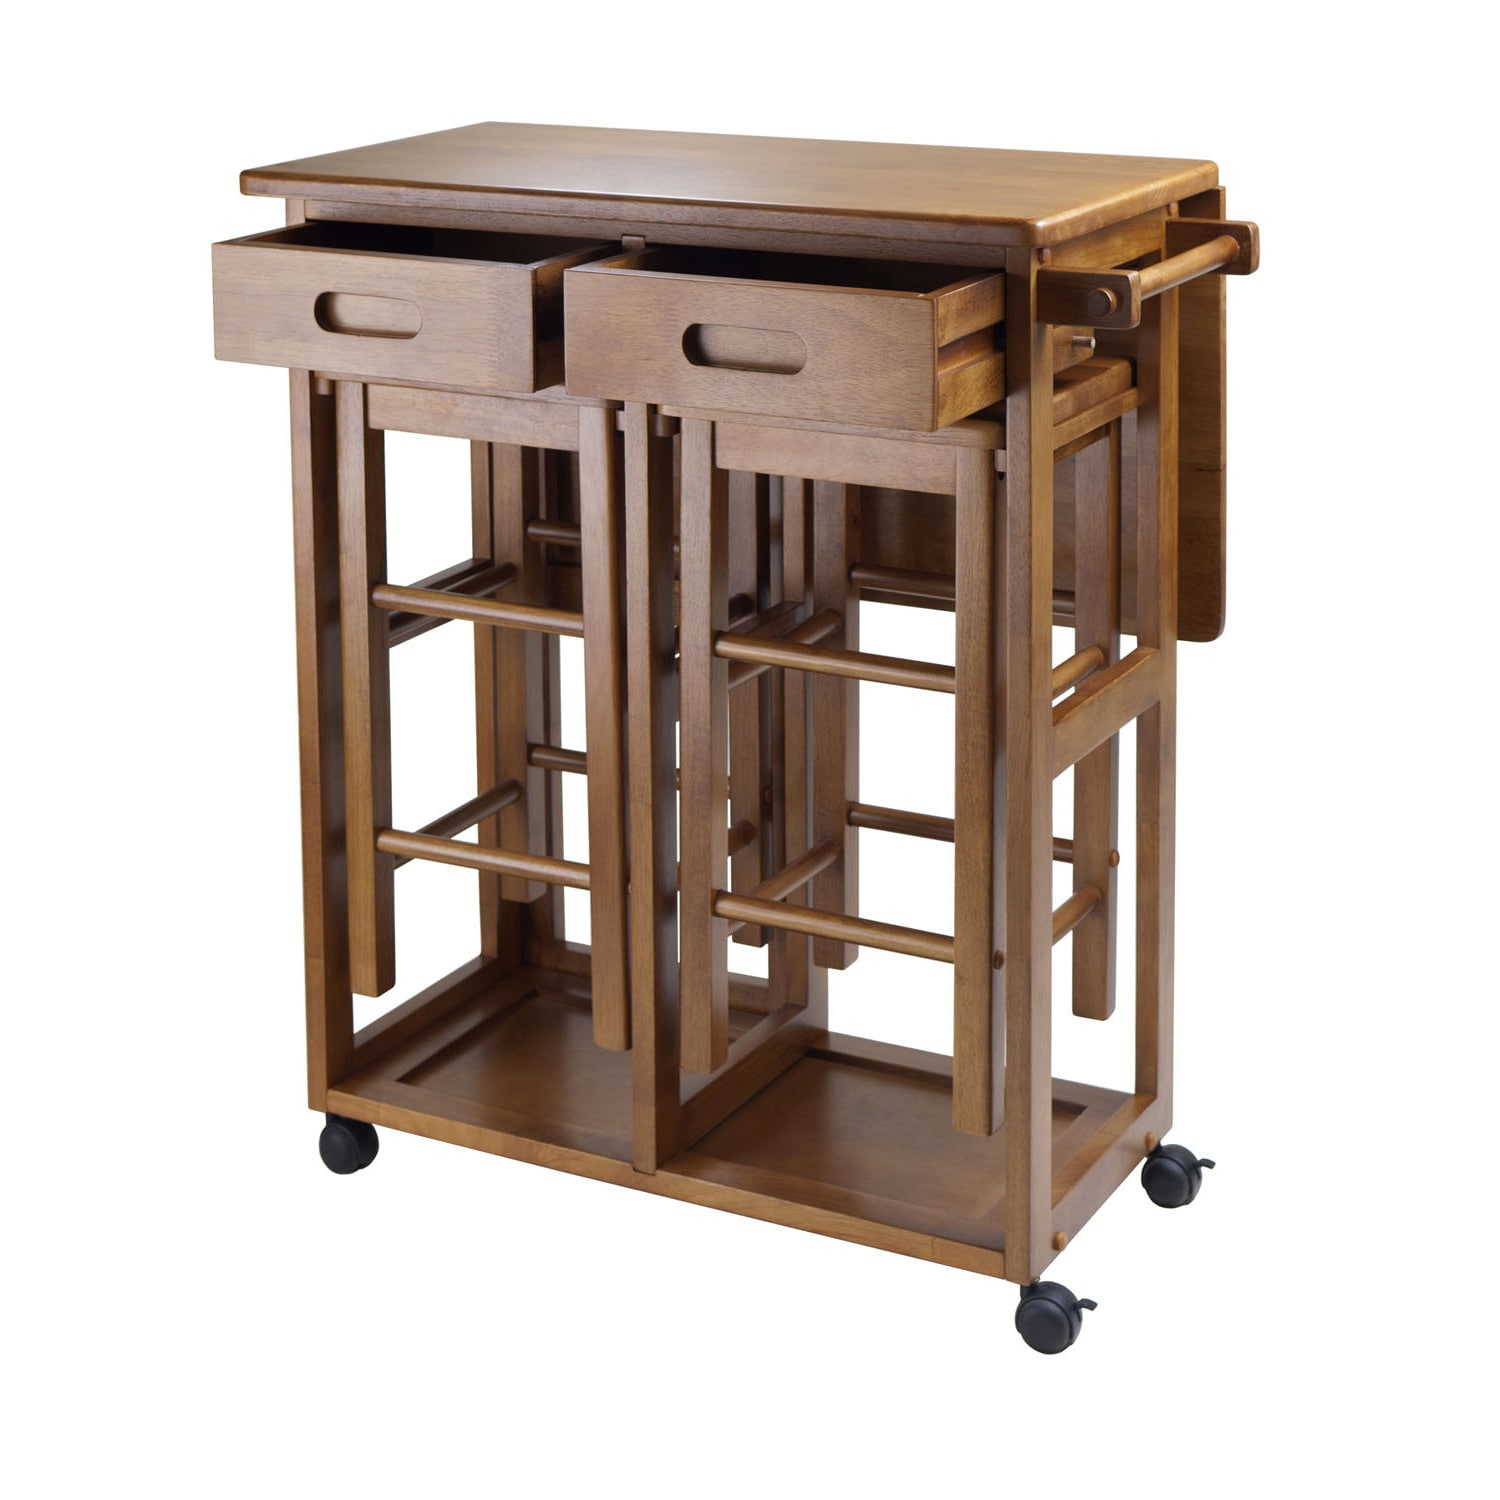 Clean Simple And Versatile This Sj Collection Kitchen Cart Seamlessly Fits Into Any Interior Bring Functionality Your Home